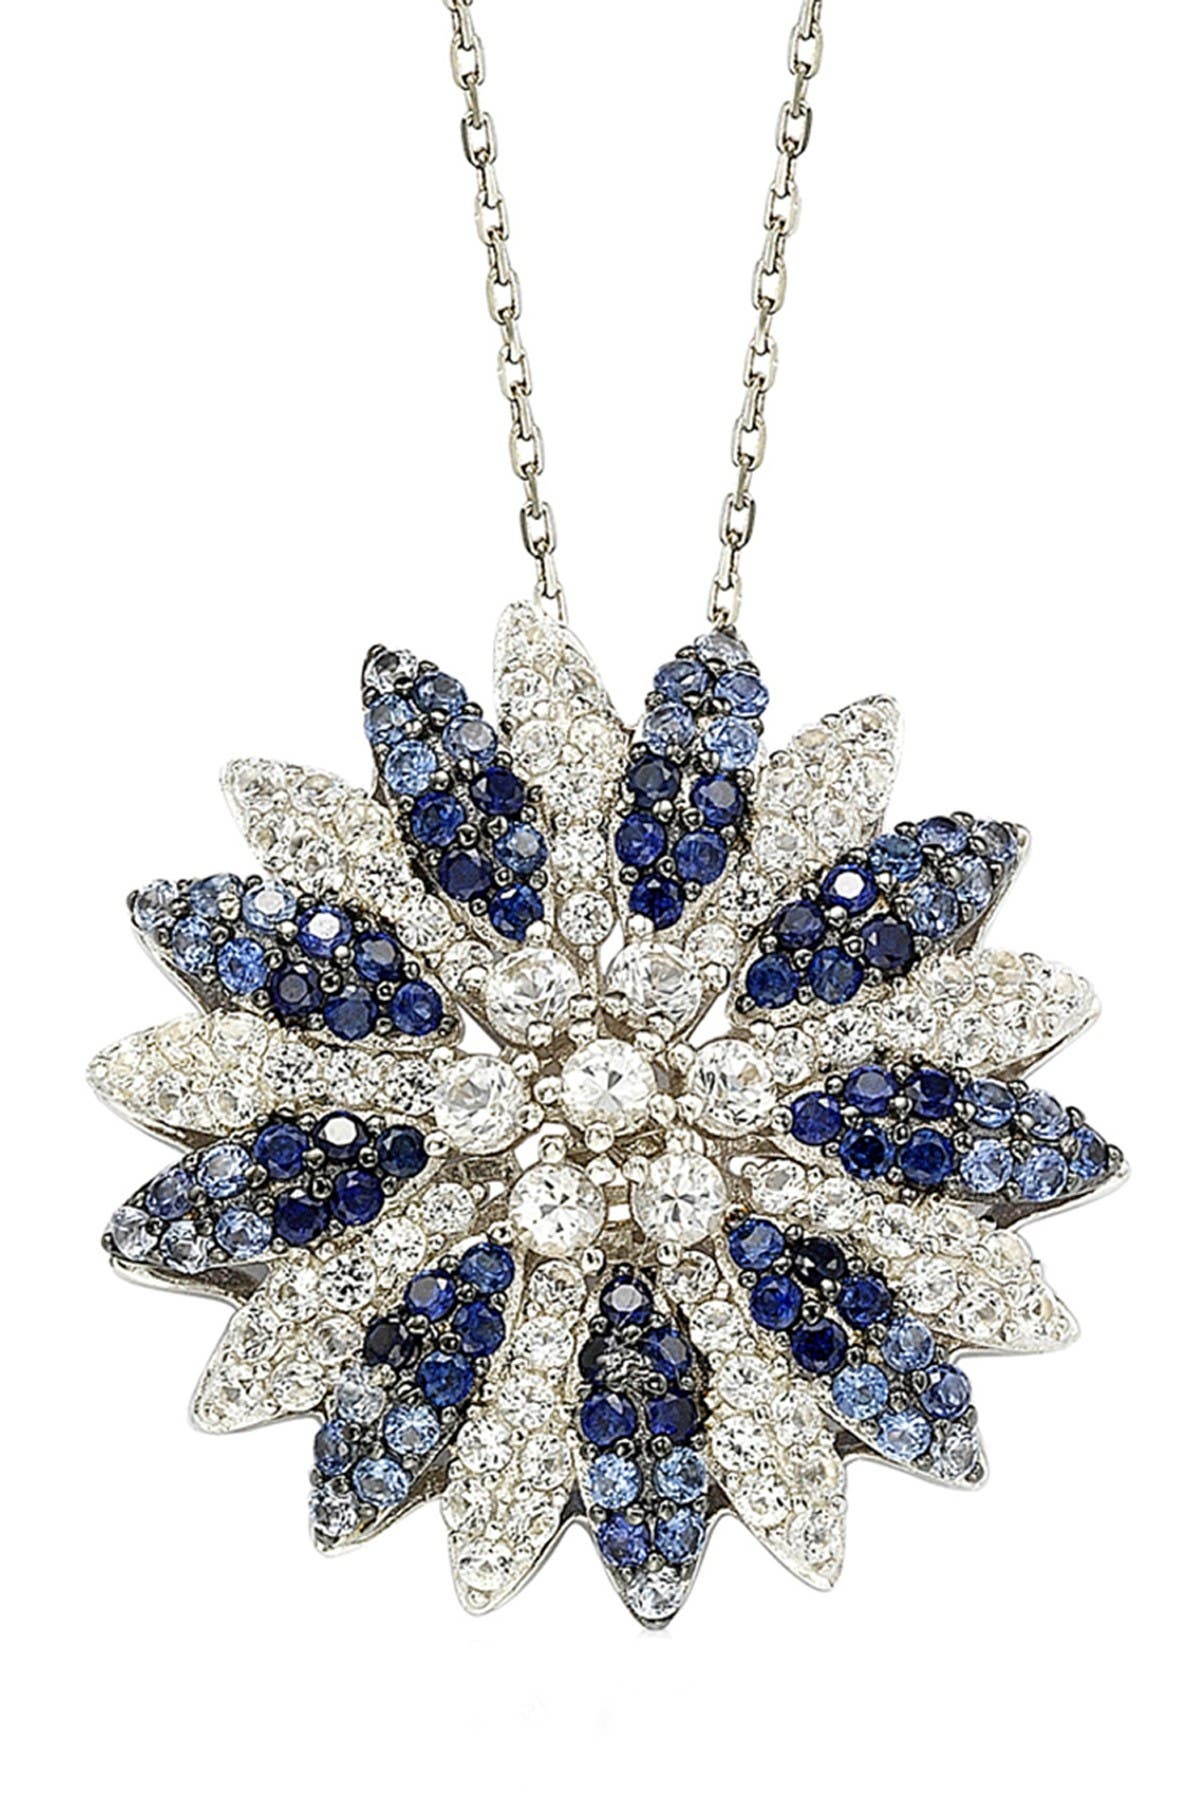 Image of Suzy Levian Two-Tone Blue Sapphire, Created White Sapphire & Brown Diamond Burst Pendant Necklace - 0.02 ctw